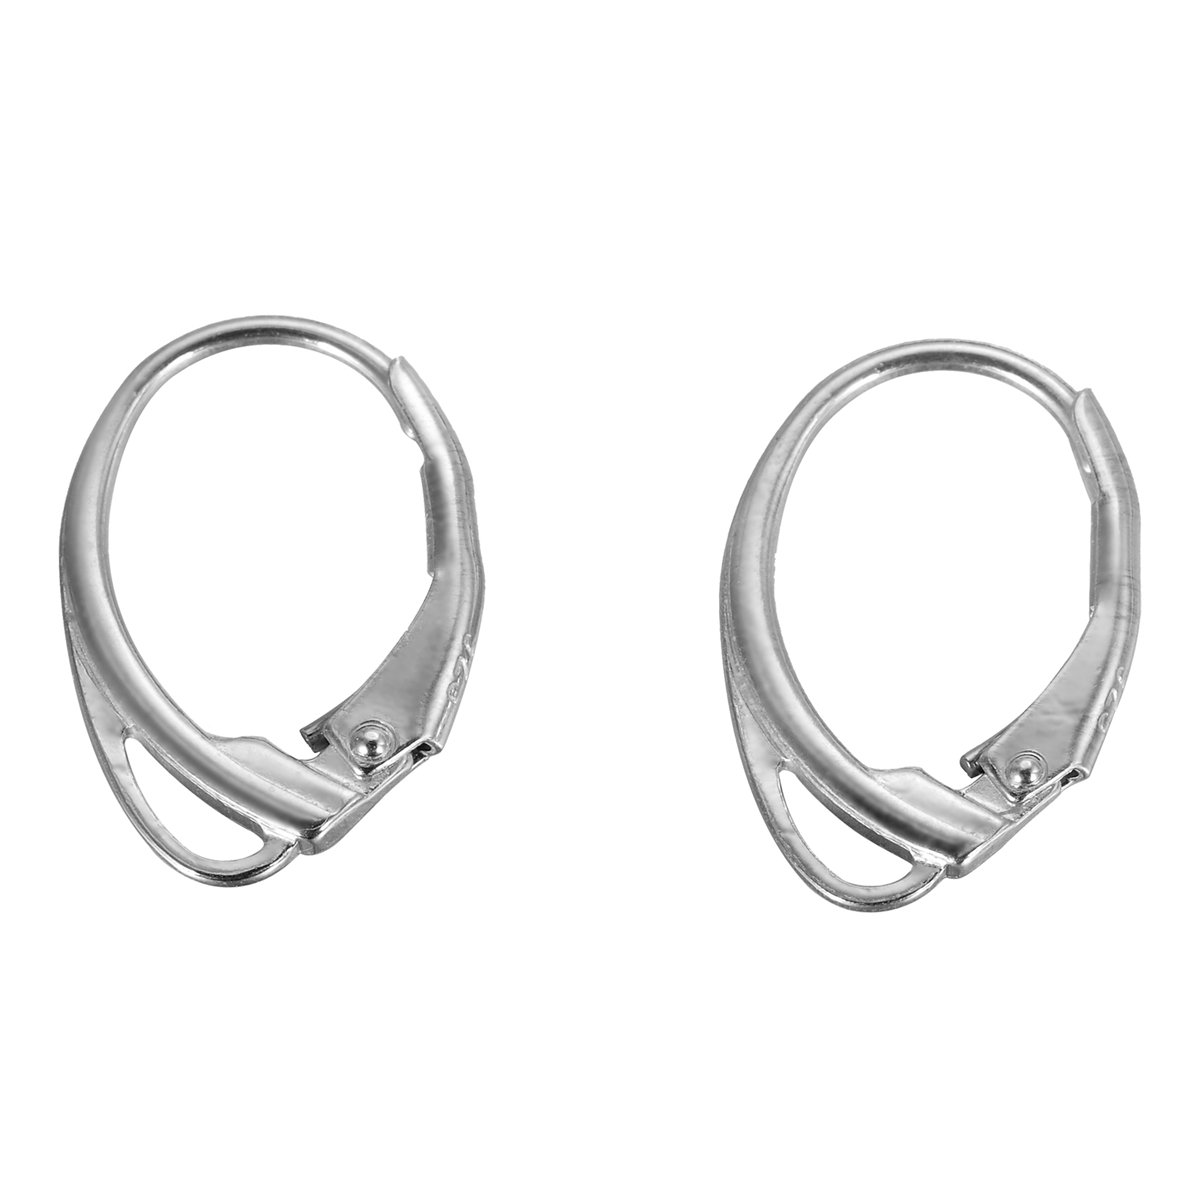 2PCS 925 Sterling Silver French Ear Wire Lever Back Open Loop Earring Hook DIY Findings 17mmx11mm Yin Feng 0AF0SA0F0R